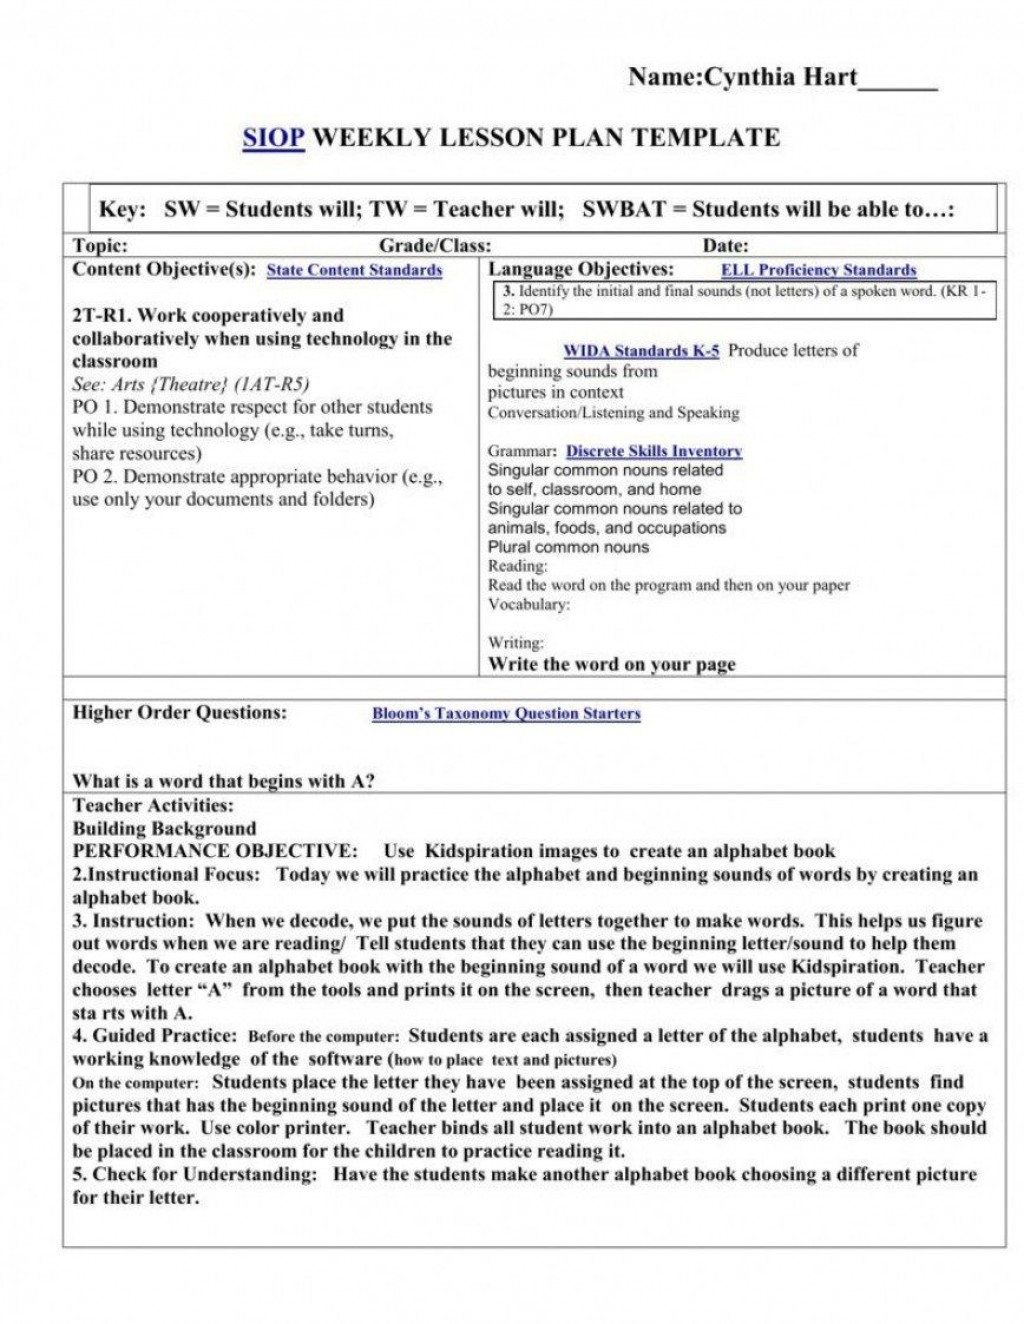 008 Archaicawful Siop Lesson Plan Example First Grade High Resolution  1stLarge